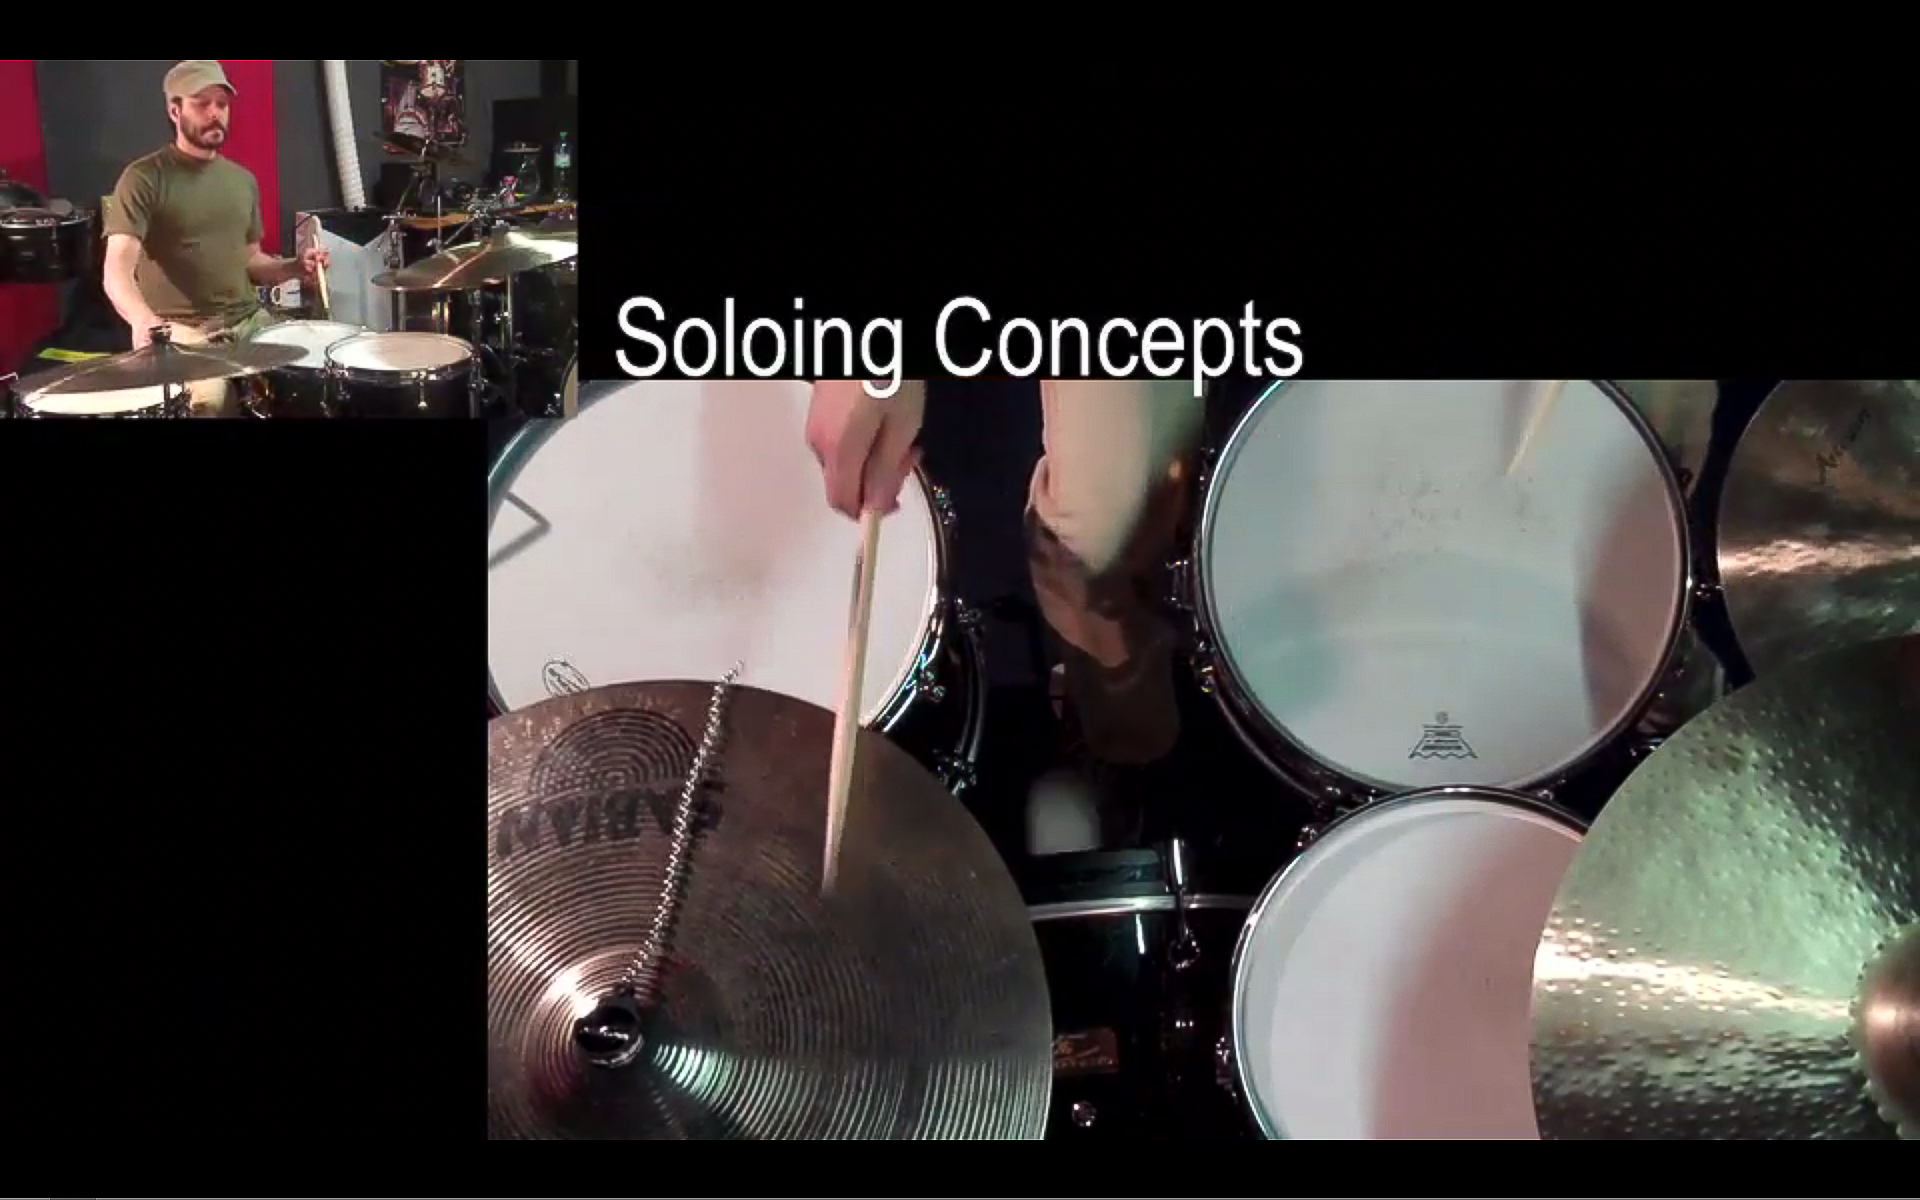 Soloing concepts